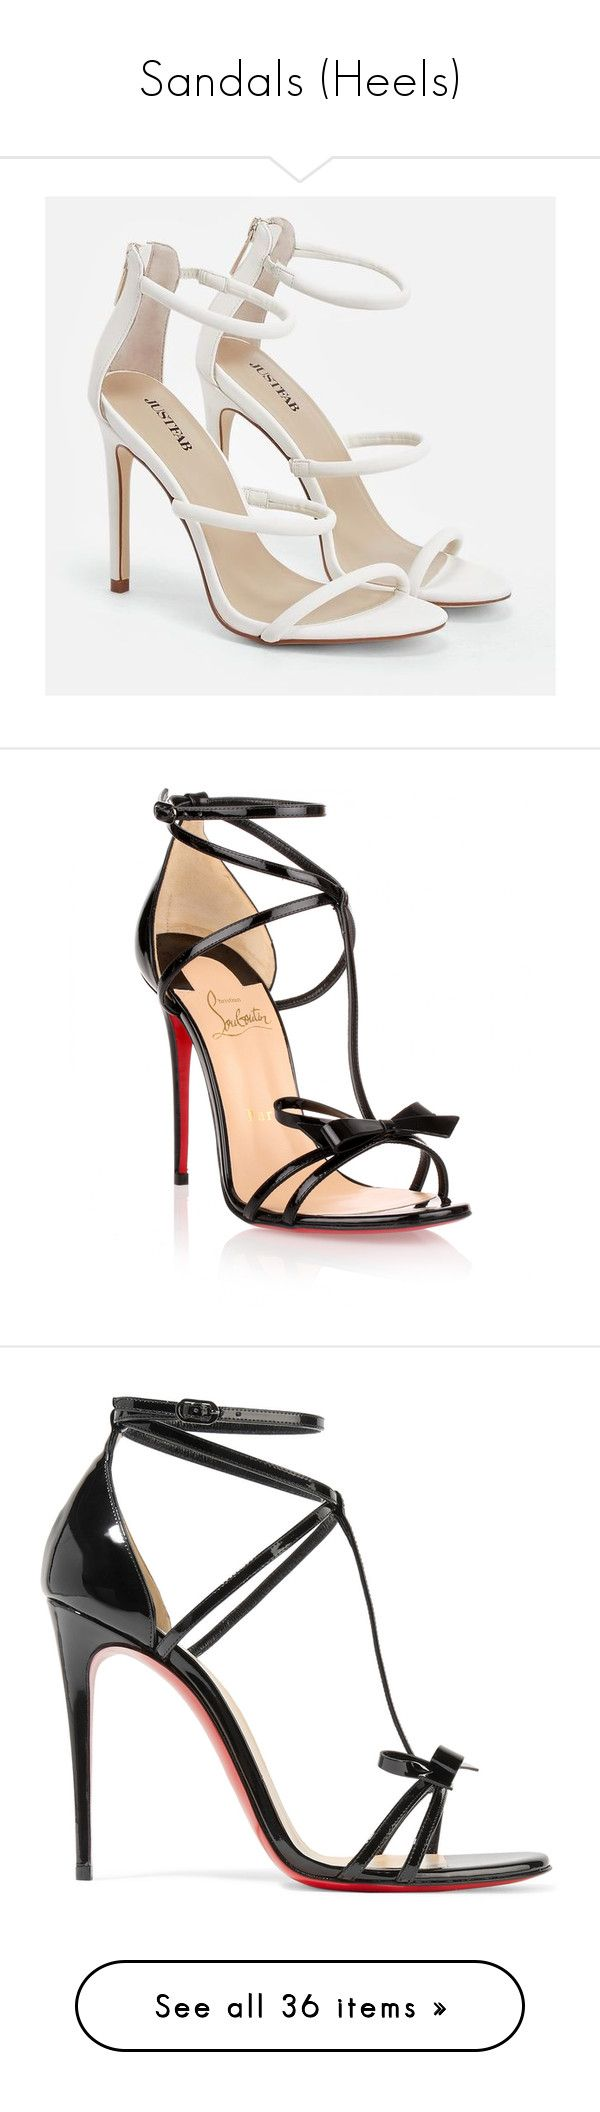 """Sandals (Heels)"" by kianajade0823 ❤ liked on Polyvore featuring shoes, sandals, white, strappy high heel sandals, metallic sandals, platform sandals, platform heel sandals, strappy heeled sandals, chaussures and louboutin"